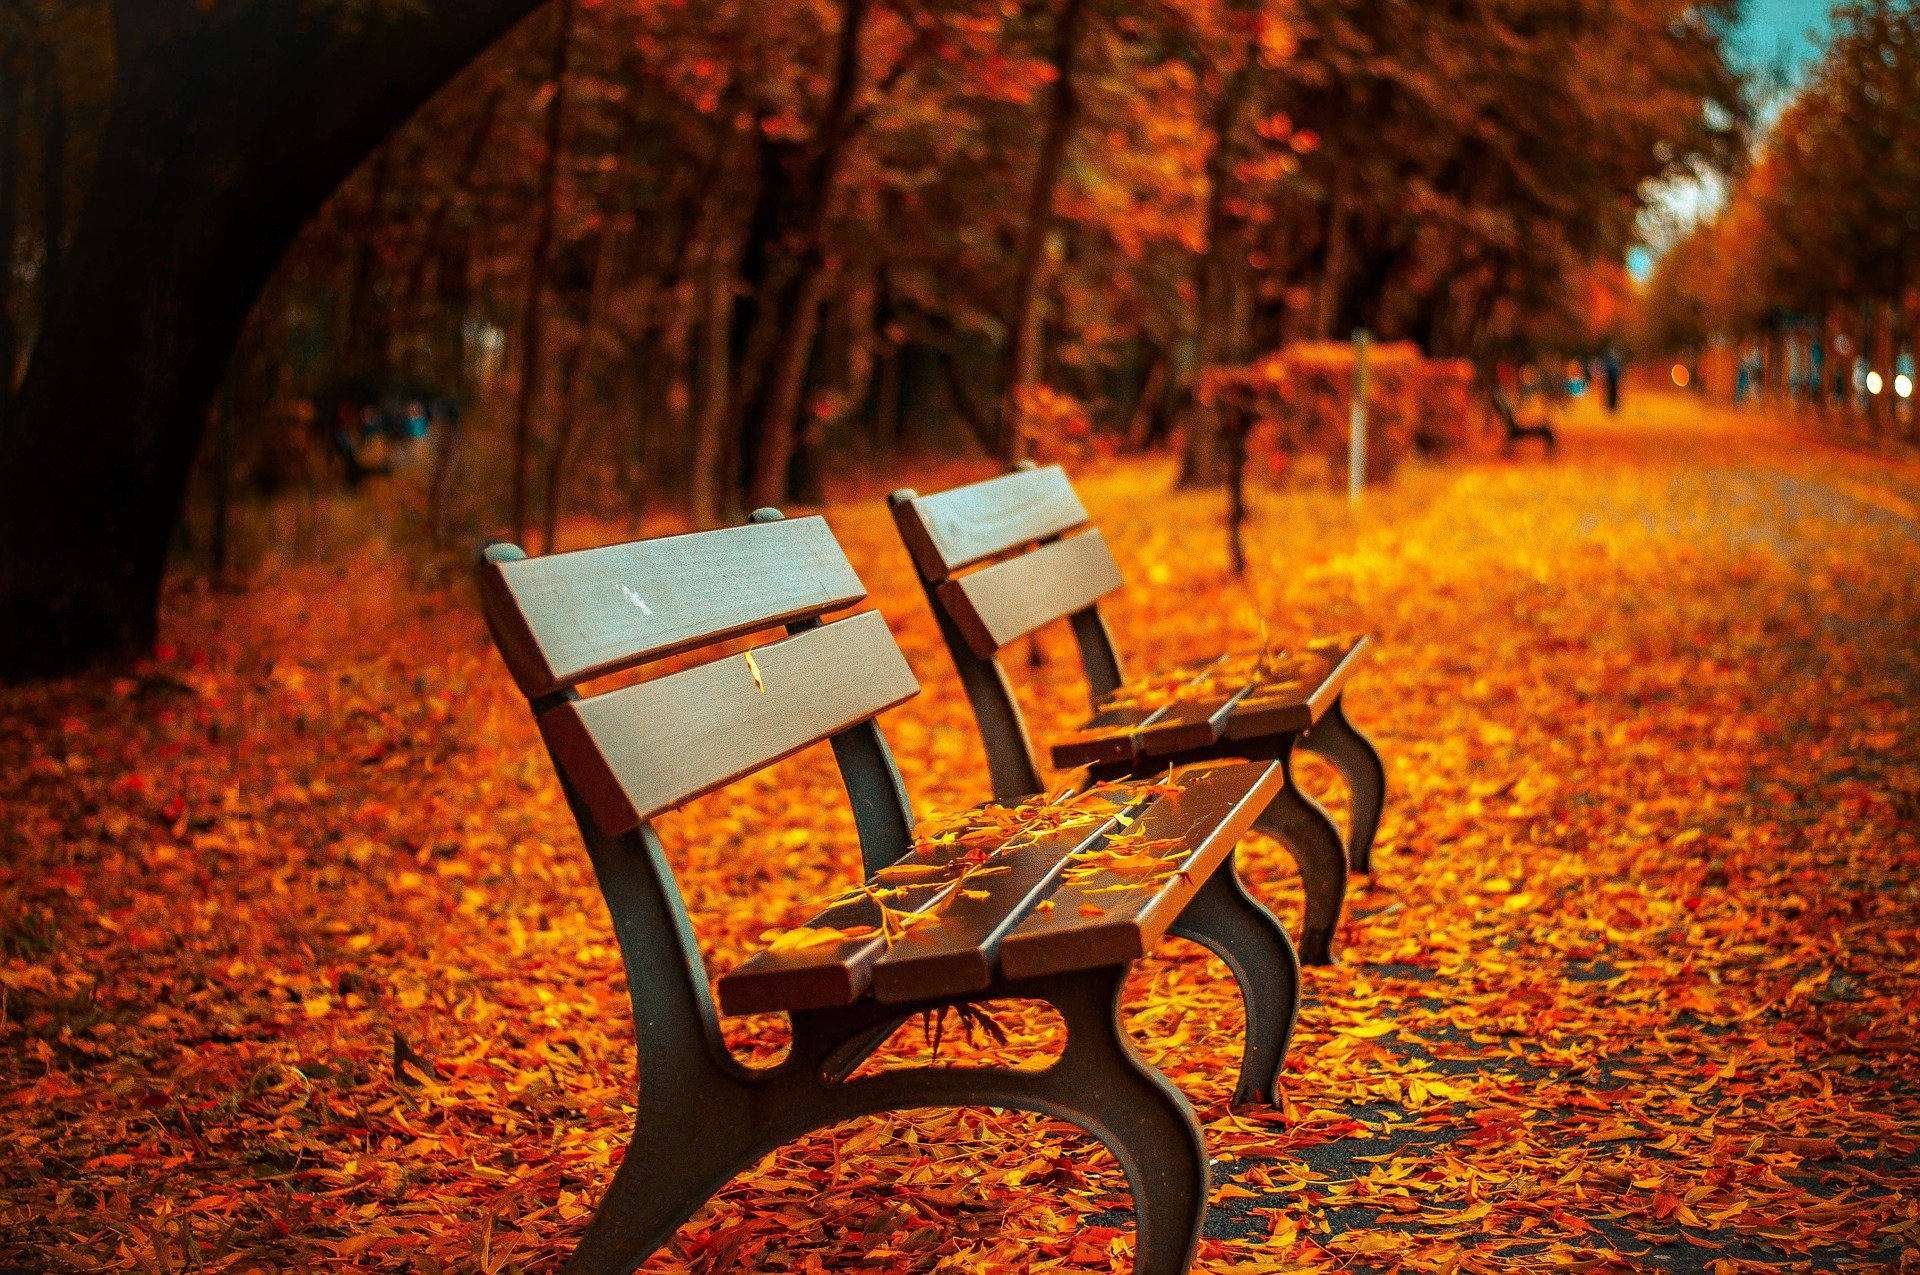 A picture of benches at a park during the Autumn season | Source: Pixabay